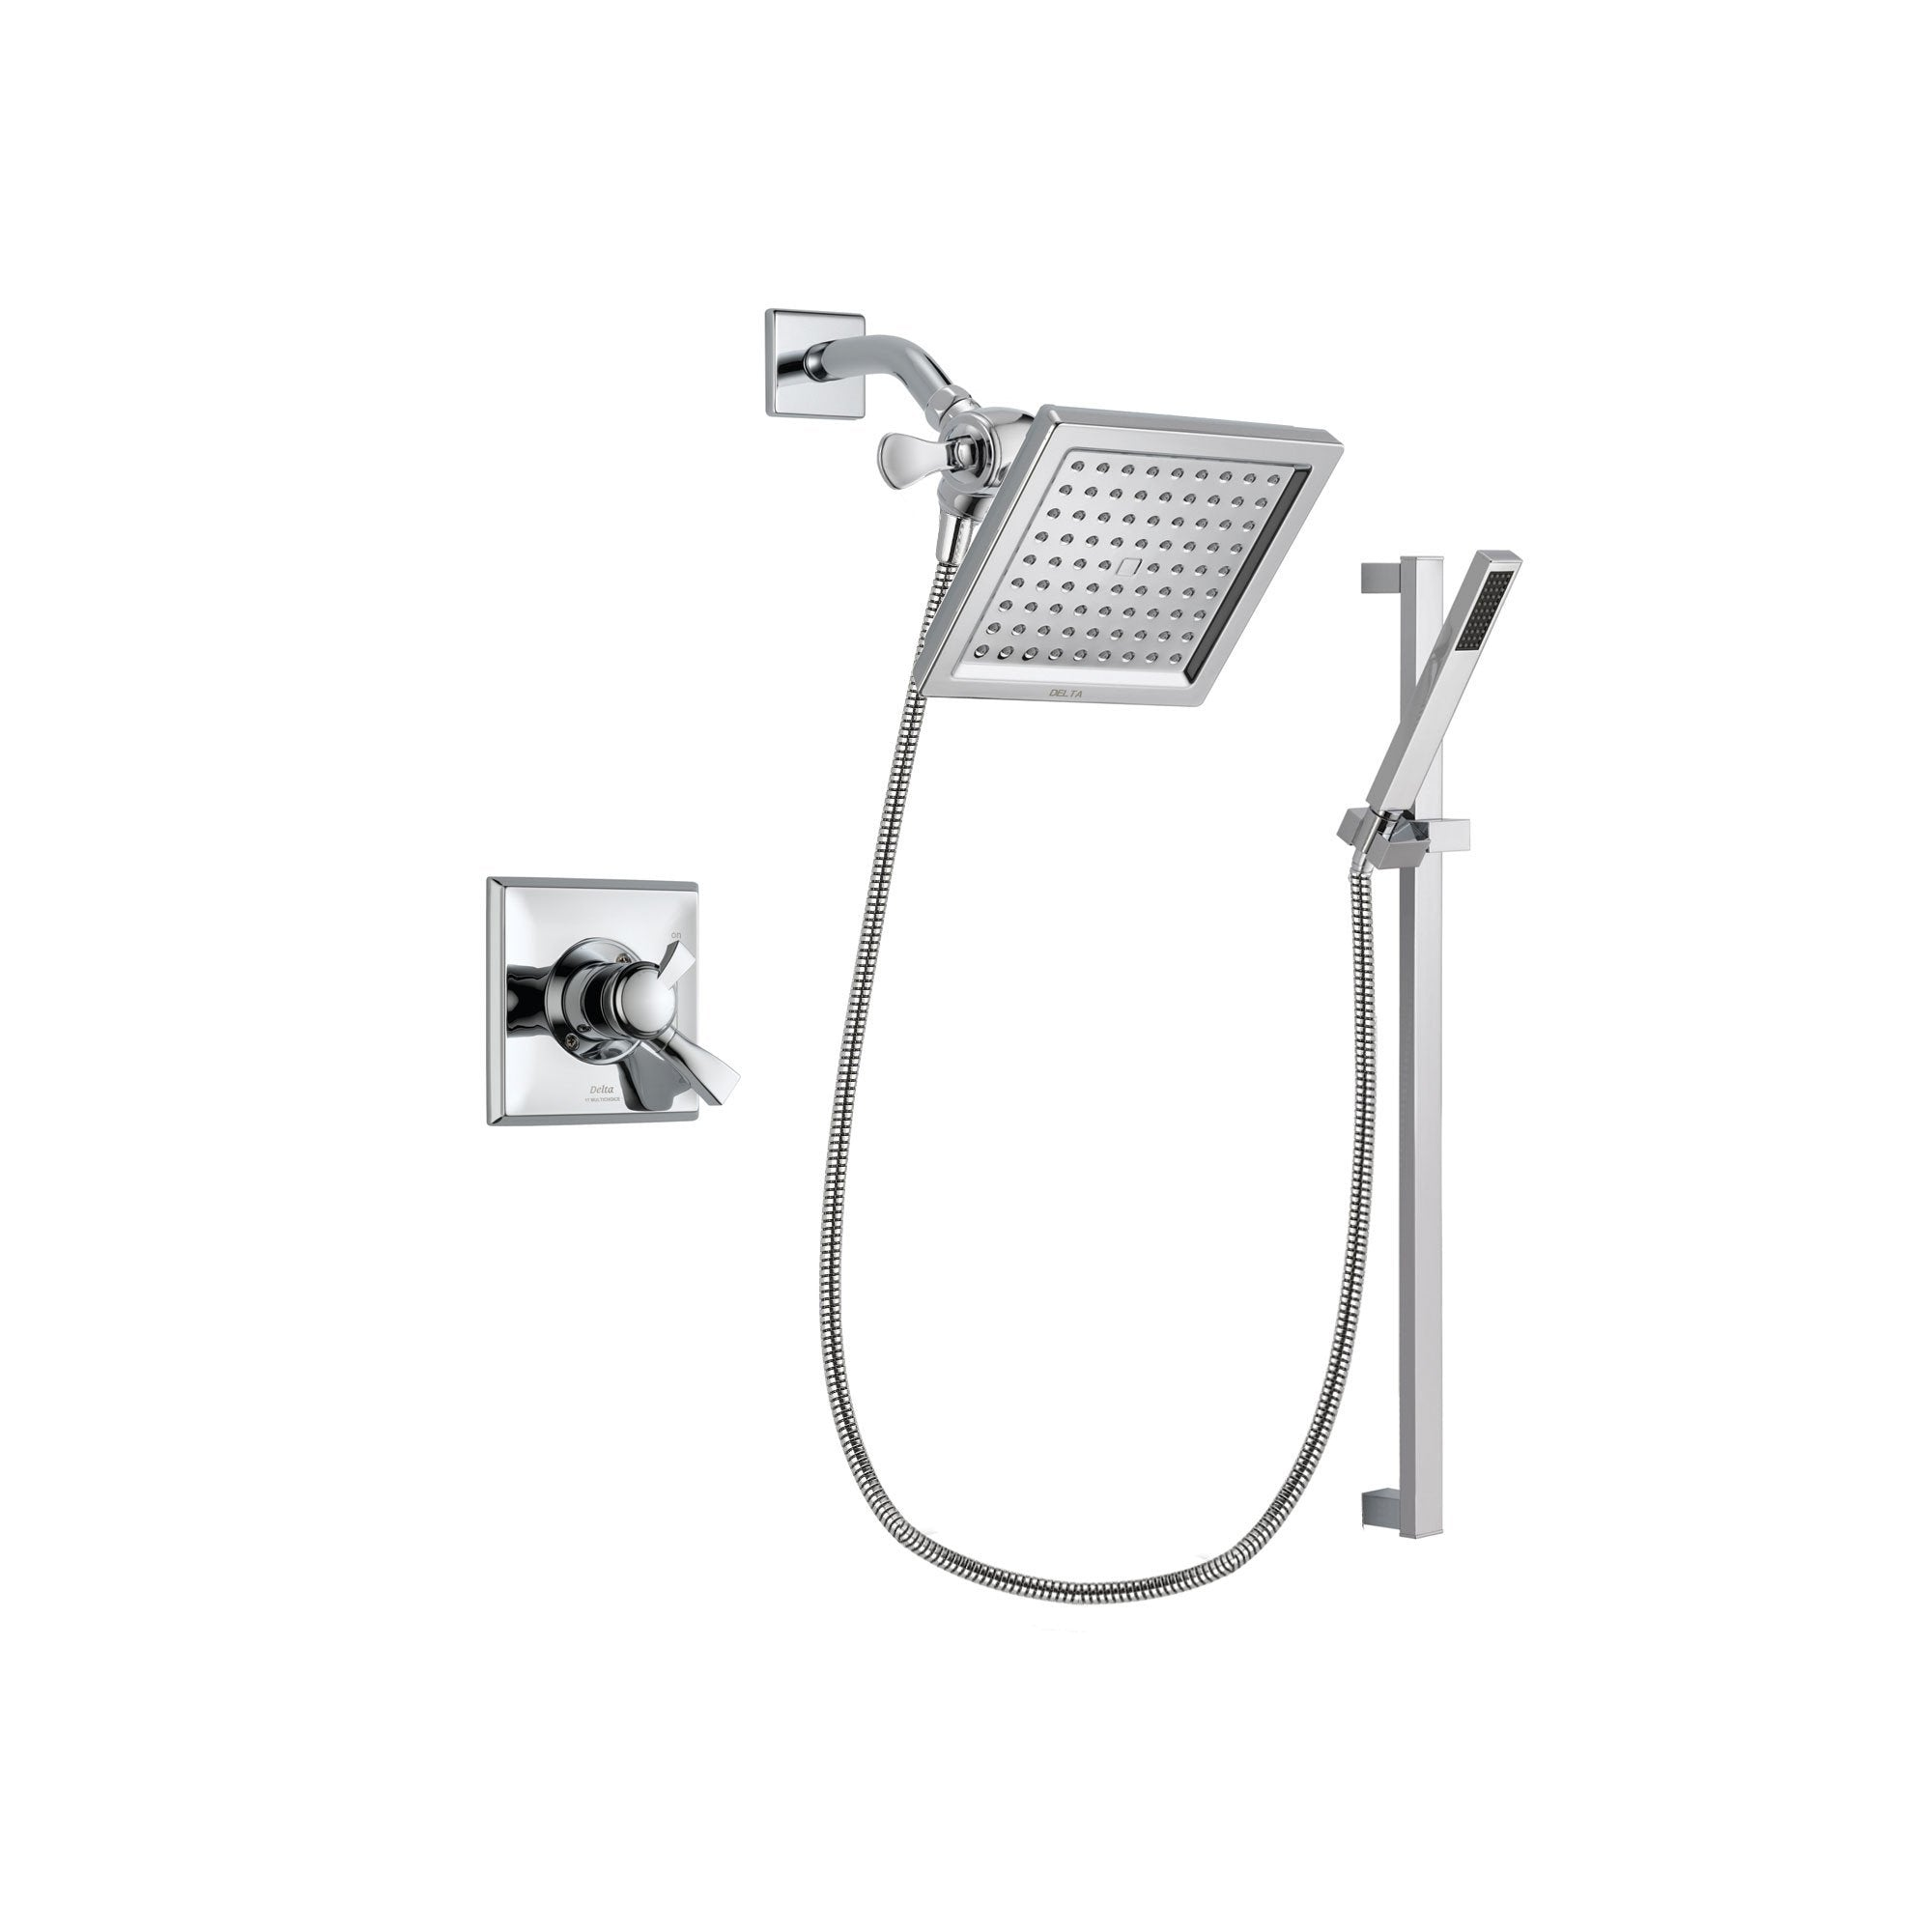 Delta Dryden Chrome Shower Faucet System w/ Shower Head and Hand Shower DSP0222V